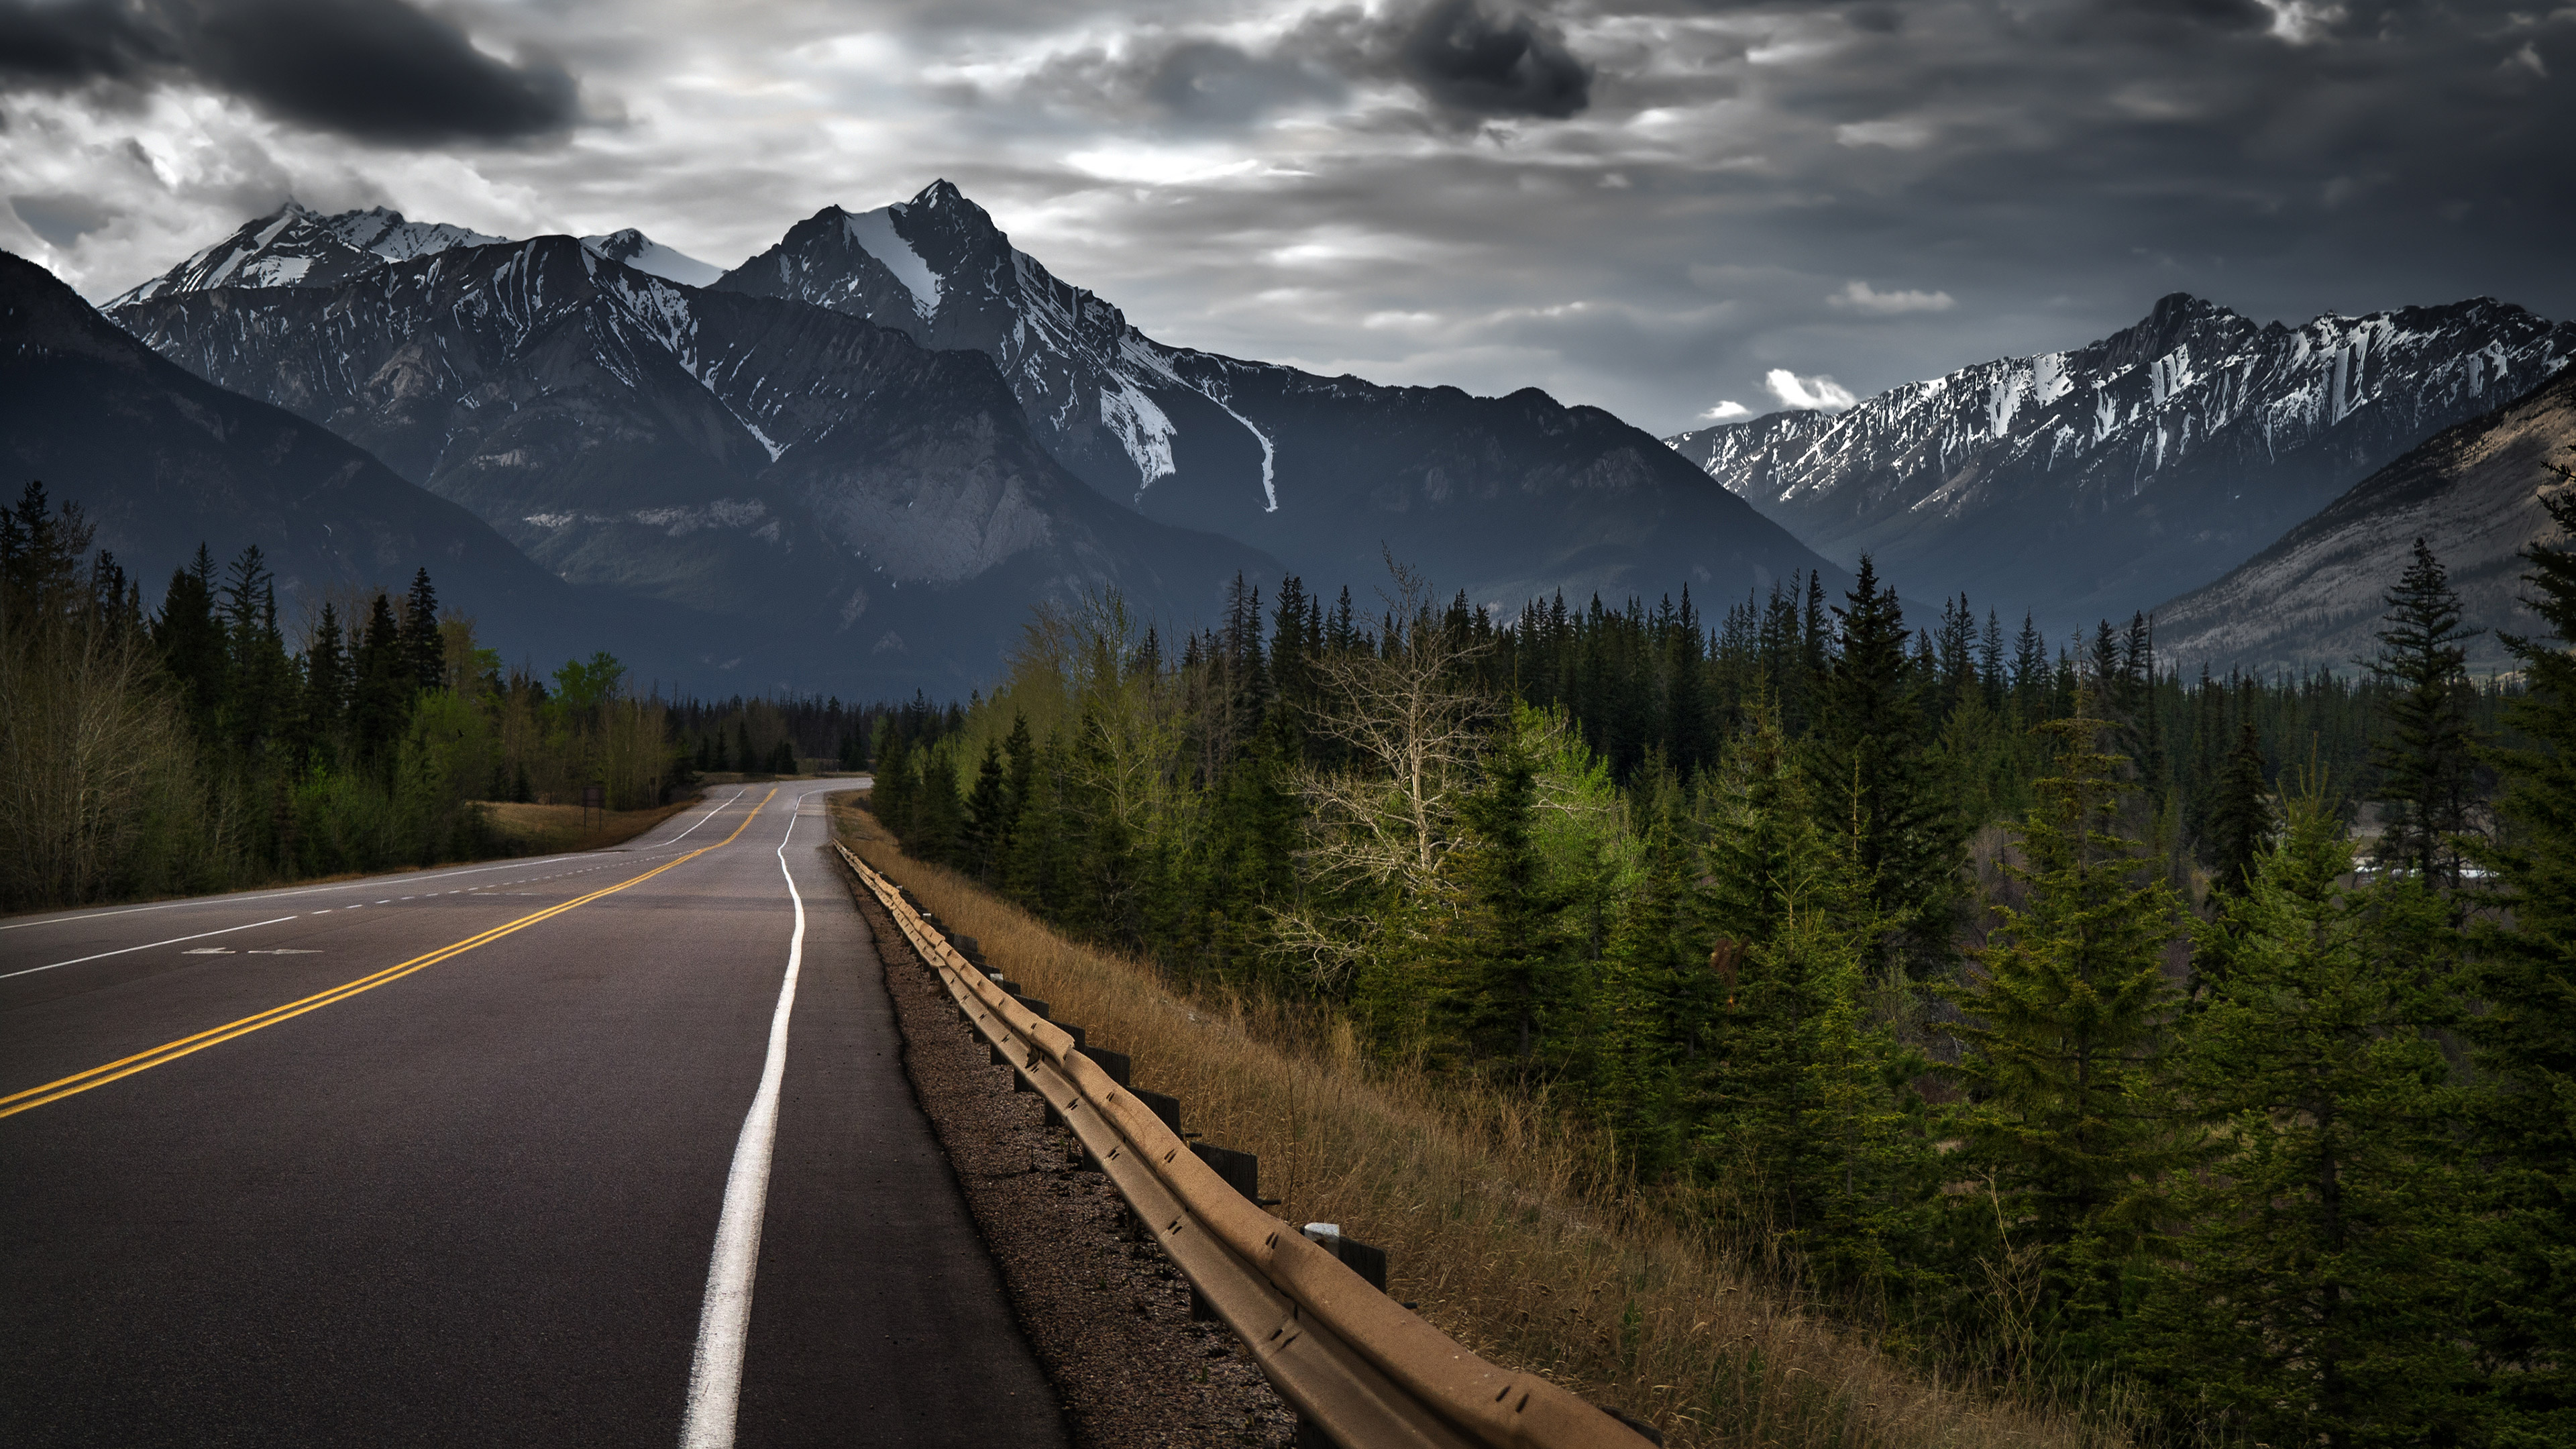 Most Inspiring Wallpaper Mountain Laptop - road-to-mountains-hd  Collection_818333.jpg